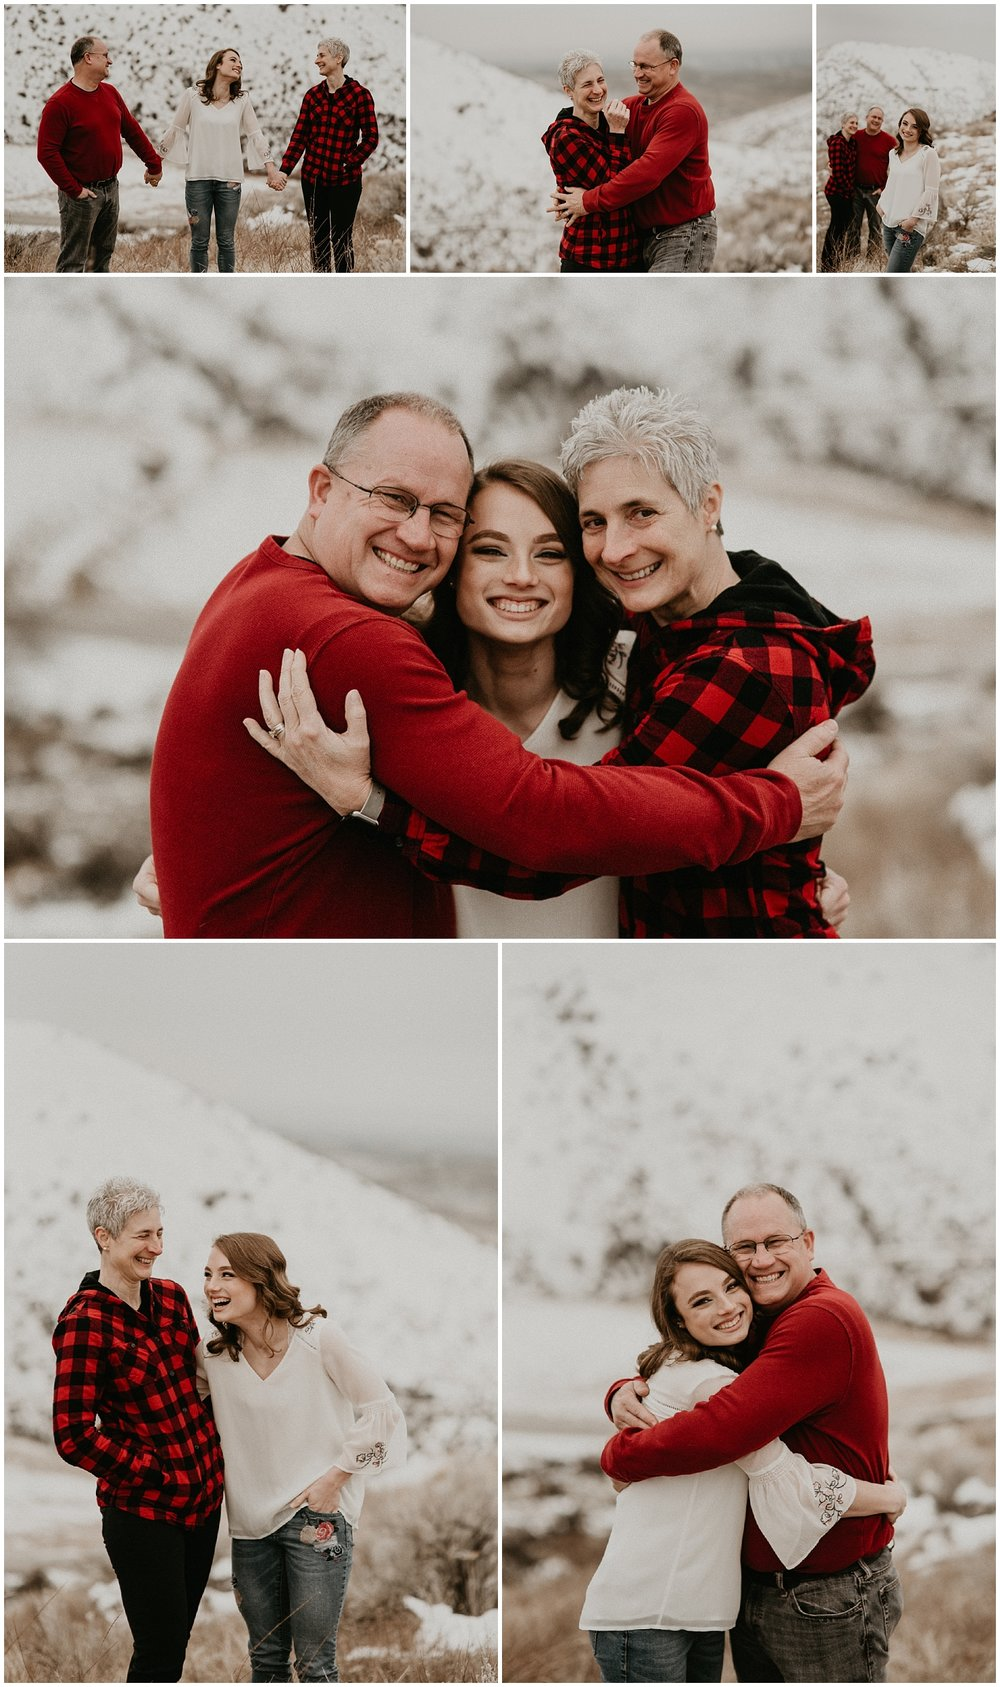 Boise Senior Photographer Meridian Photographers Makayla Madden Senior Pictures Confetti Graduation Idaho Foothills Family Photographer Family Pictures